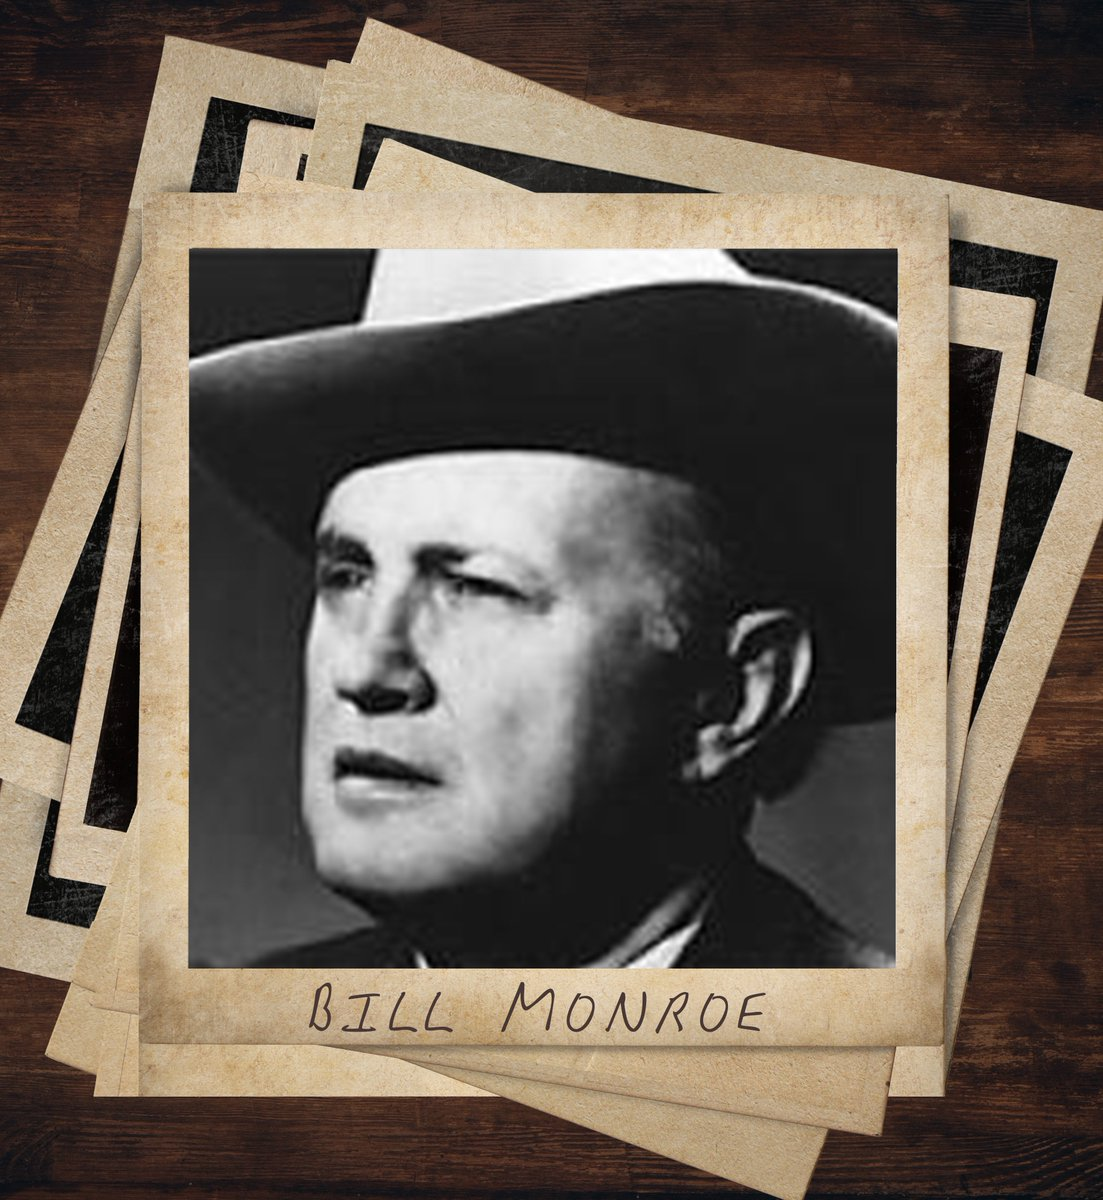 """#BillMonroe is considered the """"Father of Bluegrass,"""" and the genre even got its name from his band, The Blue Grass Boys! #ThatsCountryBro  Listen to Bill Monroe here:  https:// spoti.fi/2F3RHyq    <br>http://pic.twitter.com/D0eLjwt3sX"""